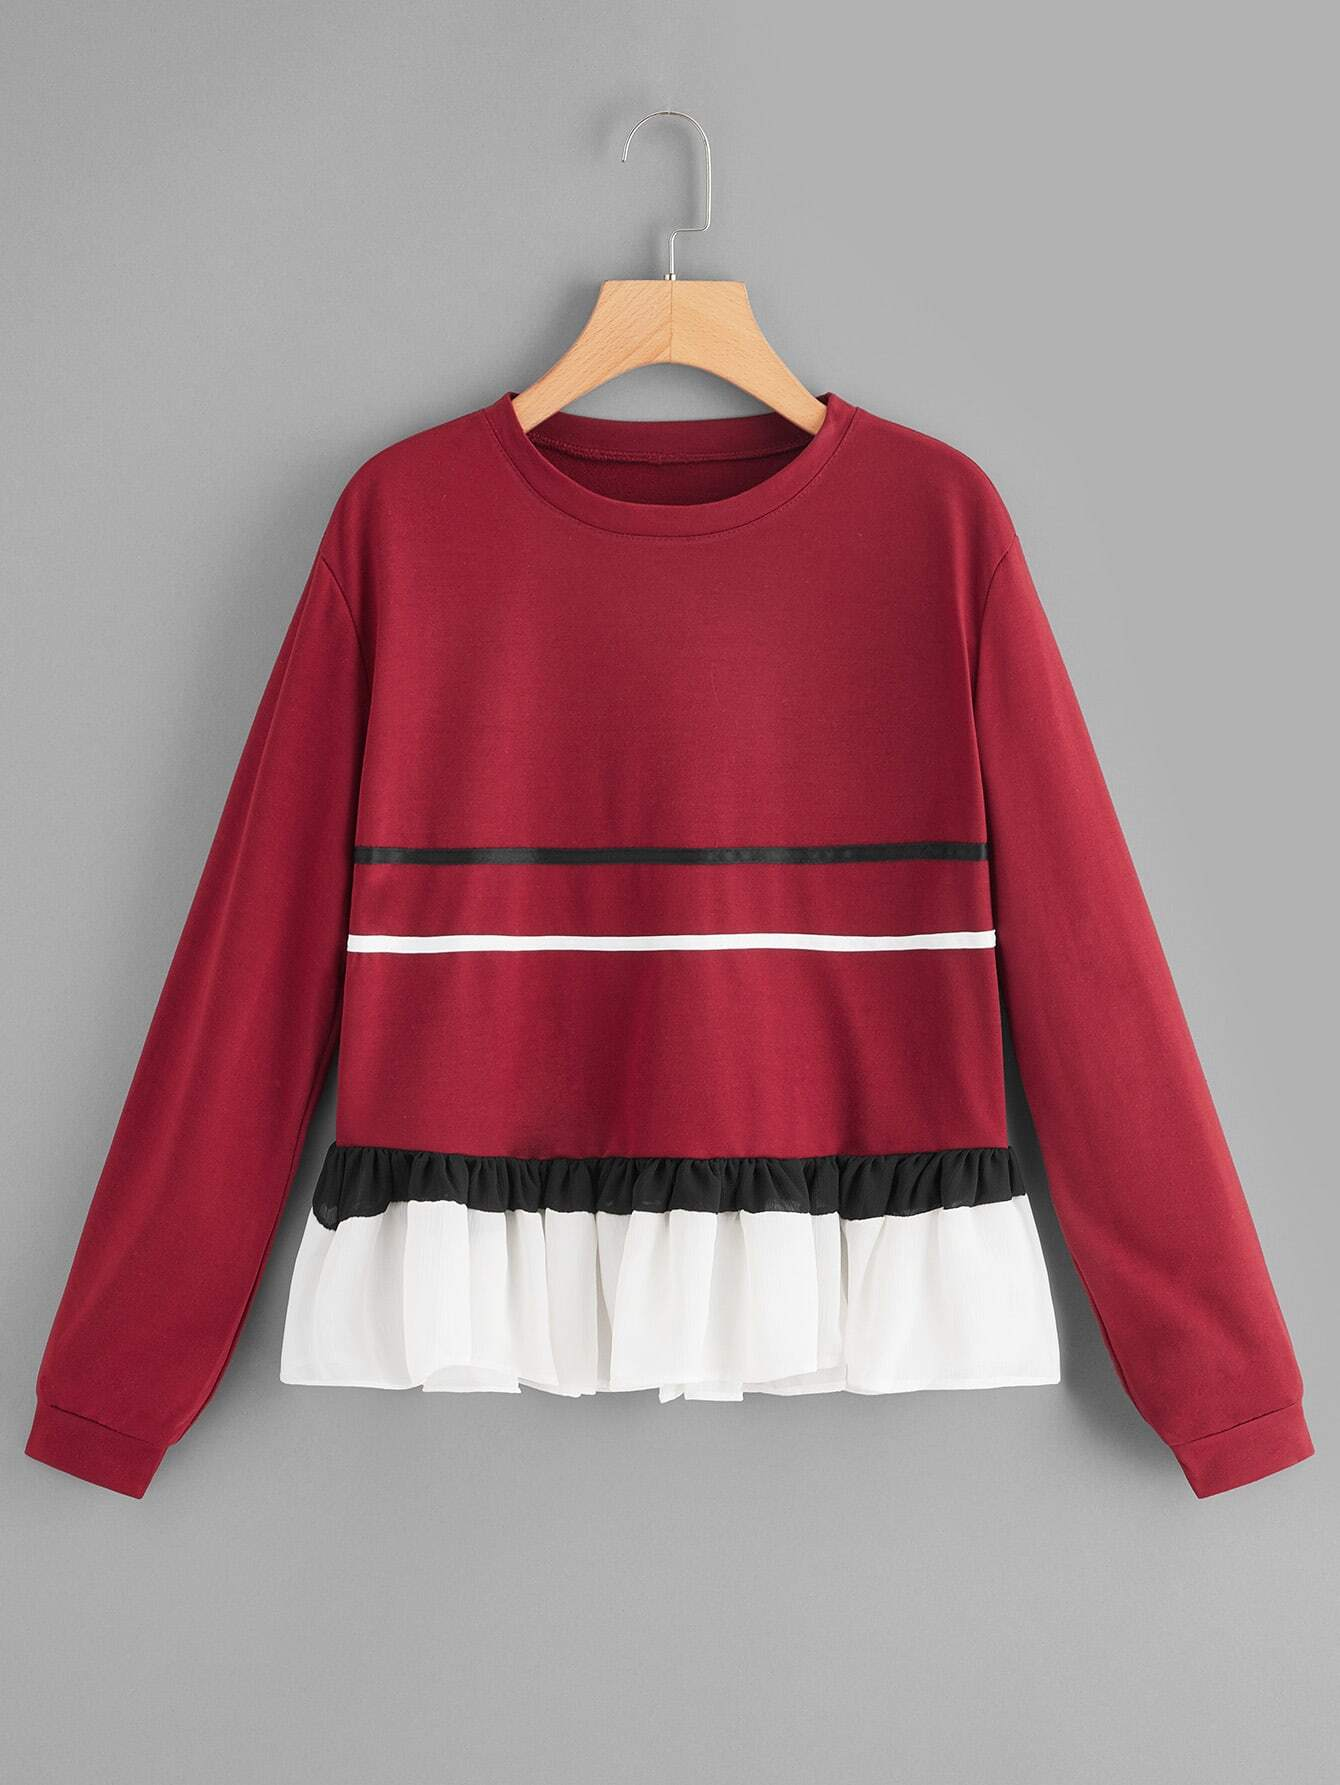 Ruffle Trim Contrast Taped Sweatshirt Ruffle Trim Contrast Taped Sweatshirt